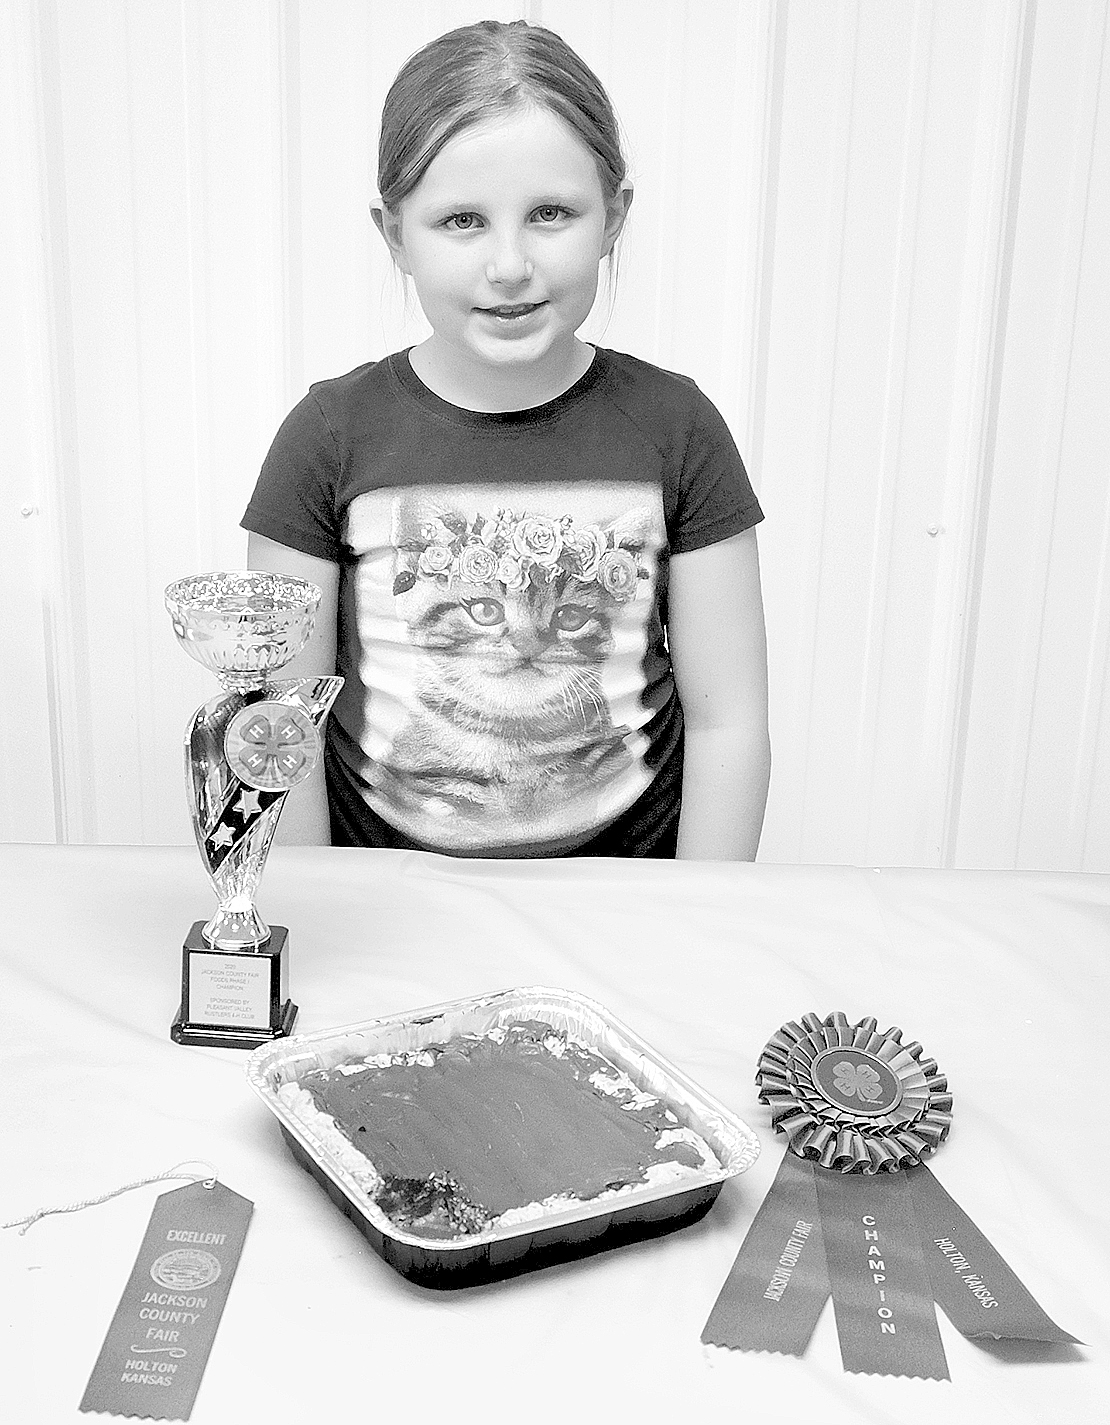 Dani Peters' chocolate chip cookie cake earned her phase I champion honors at the fair.  (Photo by Ali Holcomb)